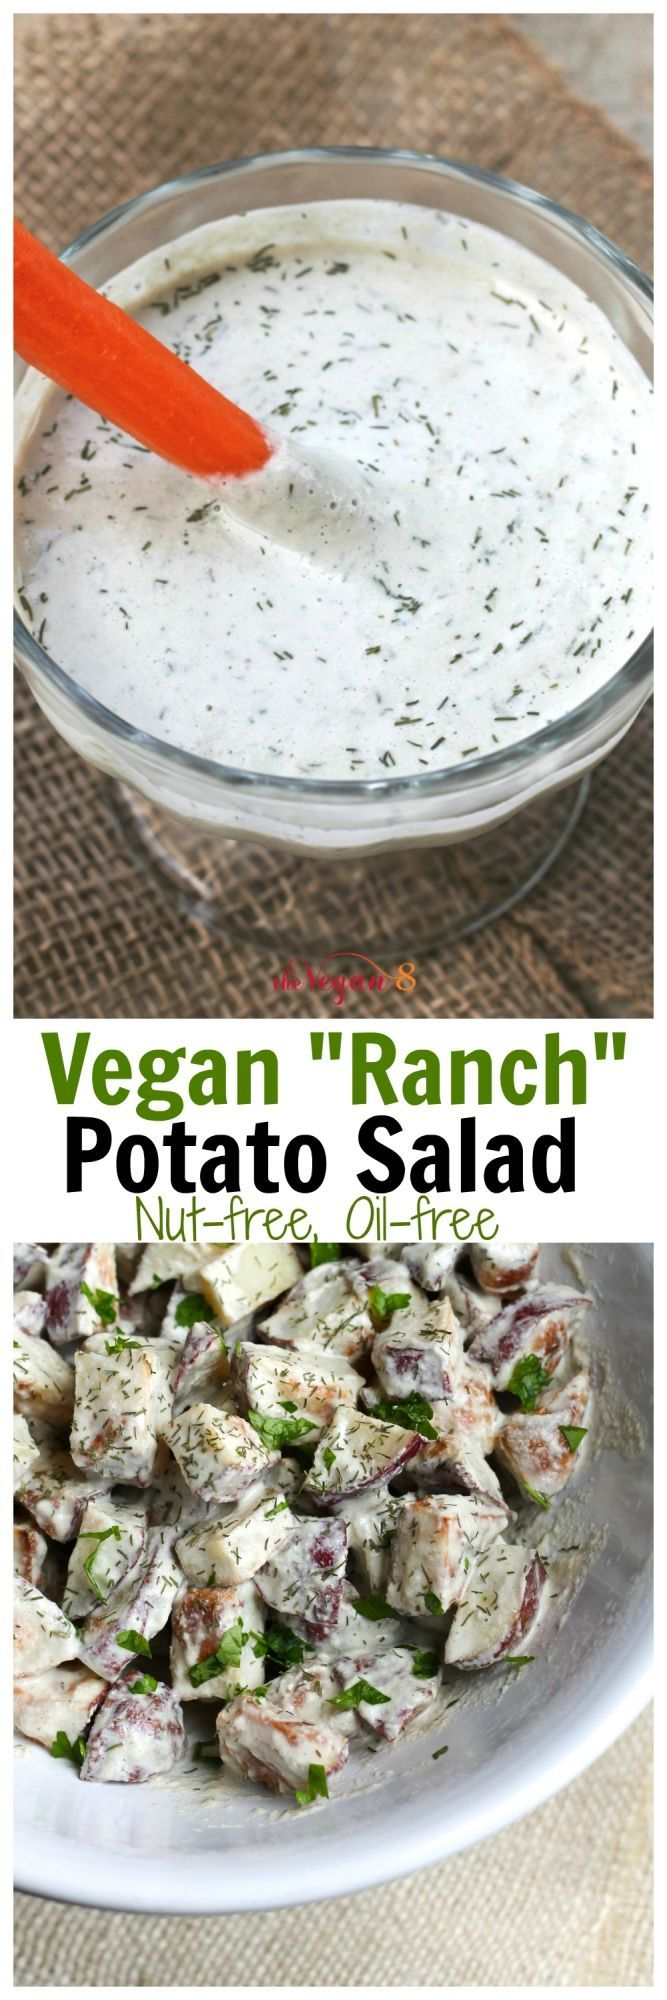 """Vegan """"Ranch"""" Potato Salad that is oil-free, soy-free, gluten-free and only 8 ingredients!"""